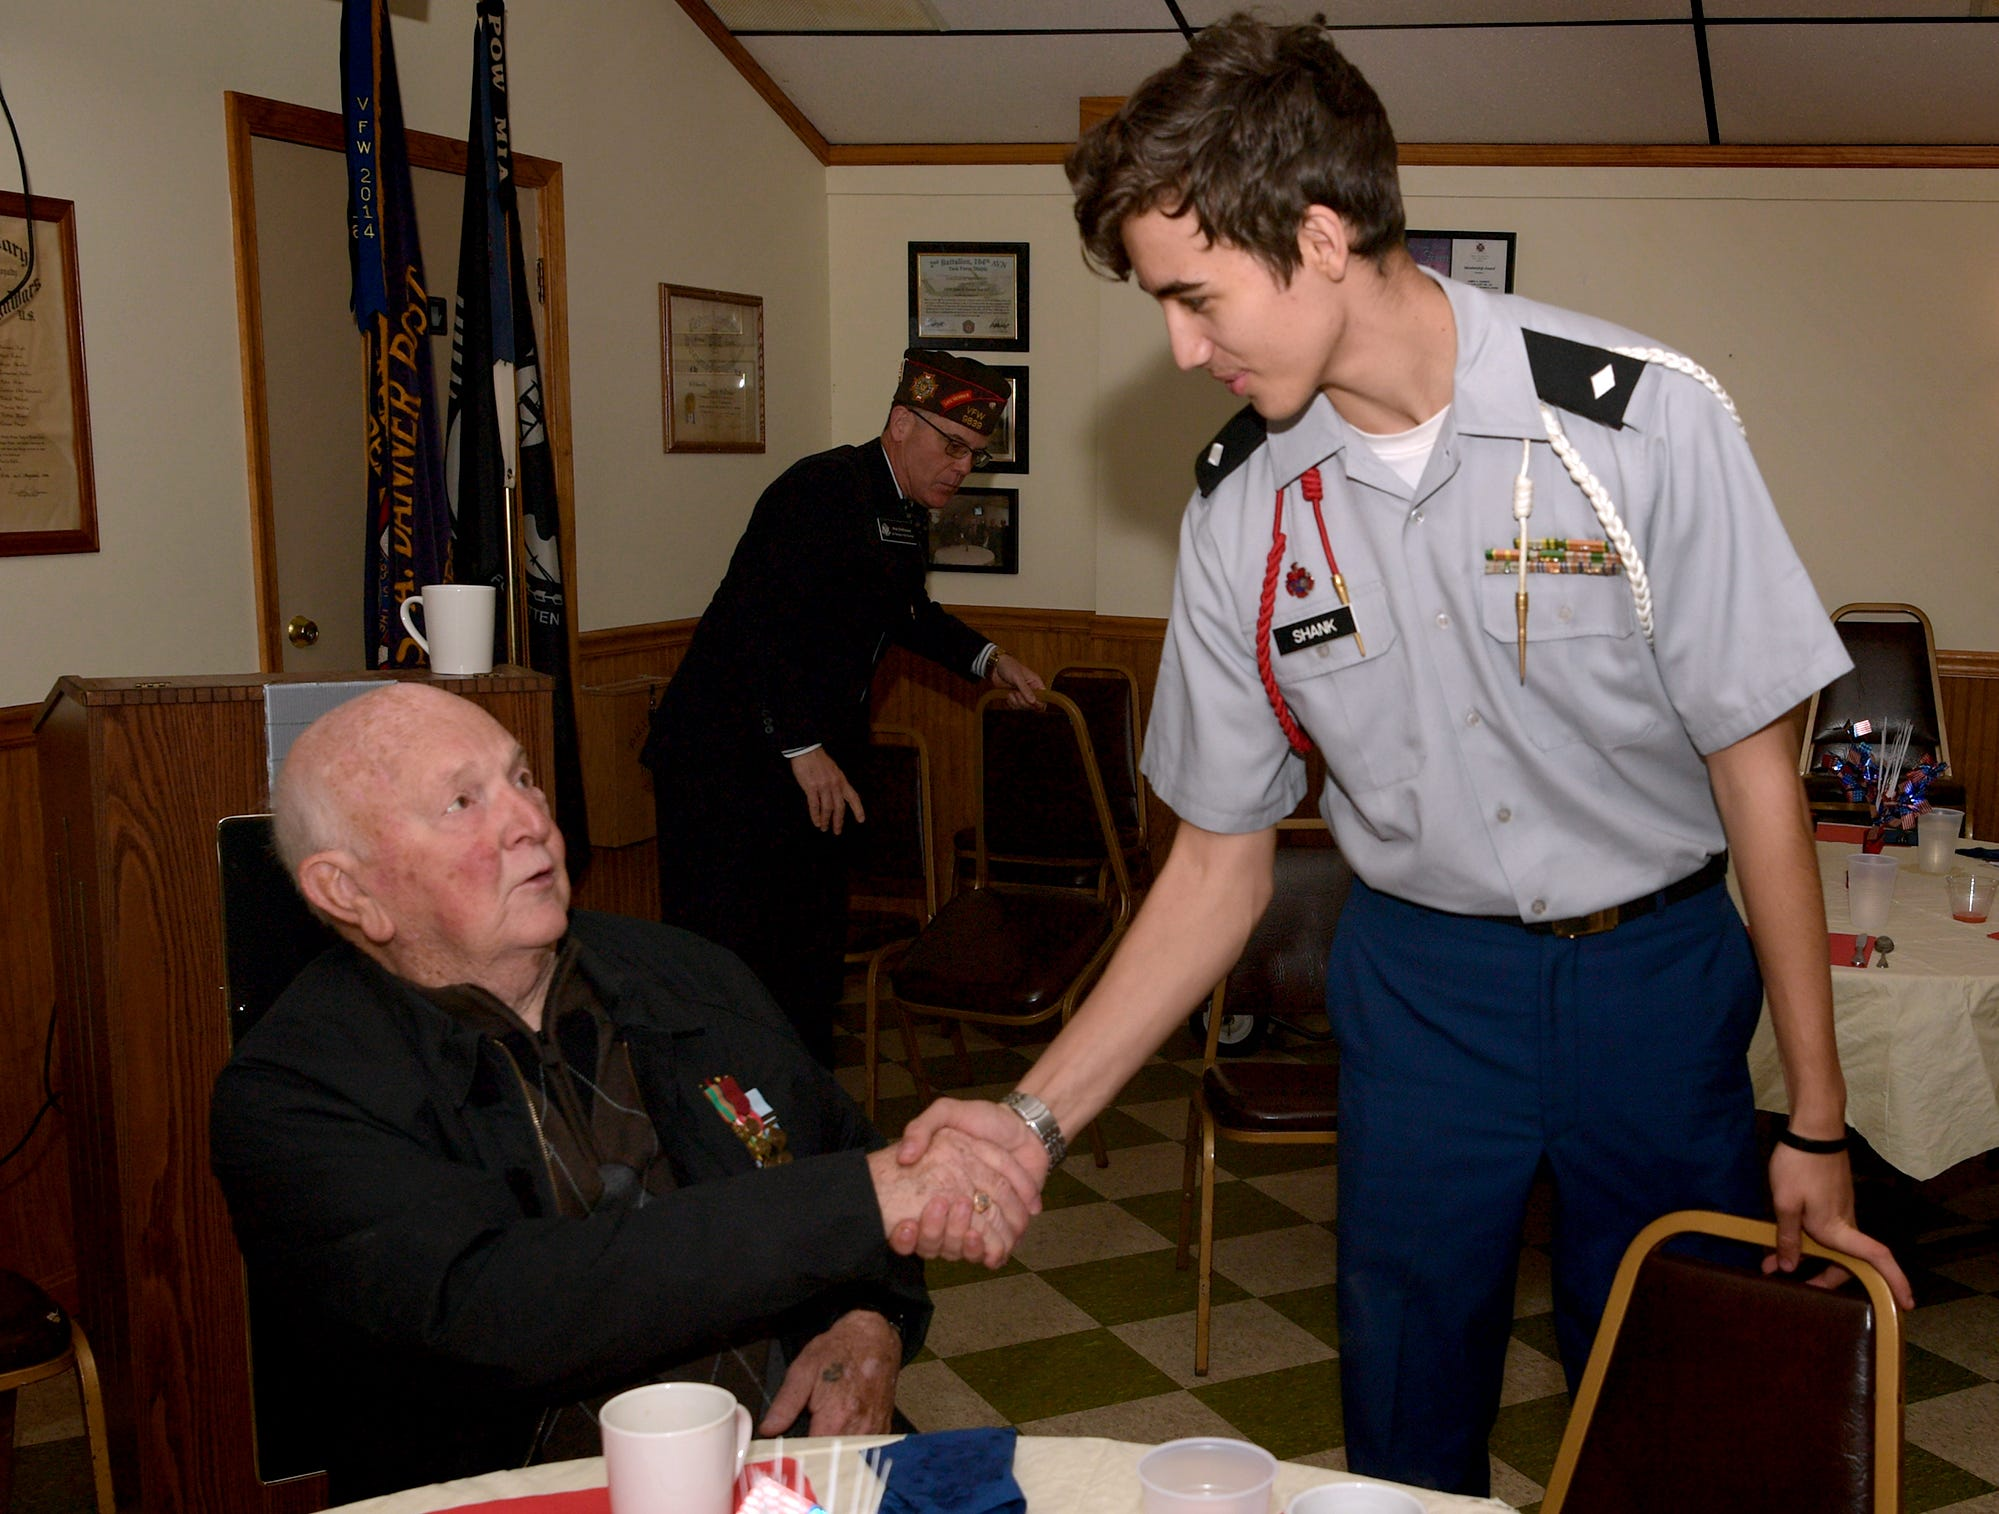 The Red Land High School JROTC presented the colors and met with area veterans during a ceremony in which Korean War veterans received Ambassador for Peace Medals issued by the Korean government at the James A. Danner VFW Post #537 in Newberry Township Thursday, Sept. 27, 2018. The event was sponsored by PA State Representative Dawn Keefer in conjunction with U.S. Senator Pat Toomey's office, which assisted in procuring the medals. Bill Kalina photo